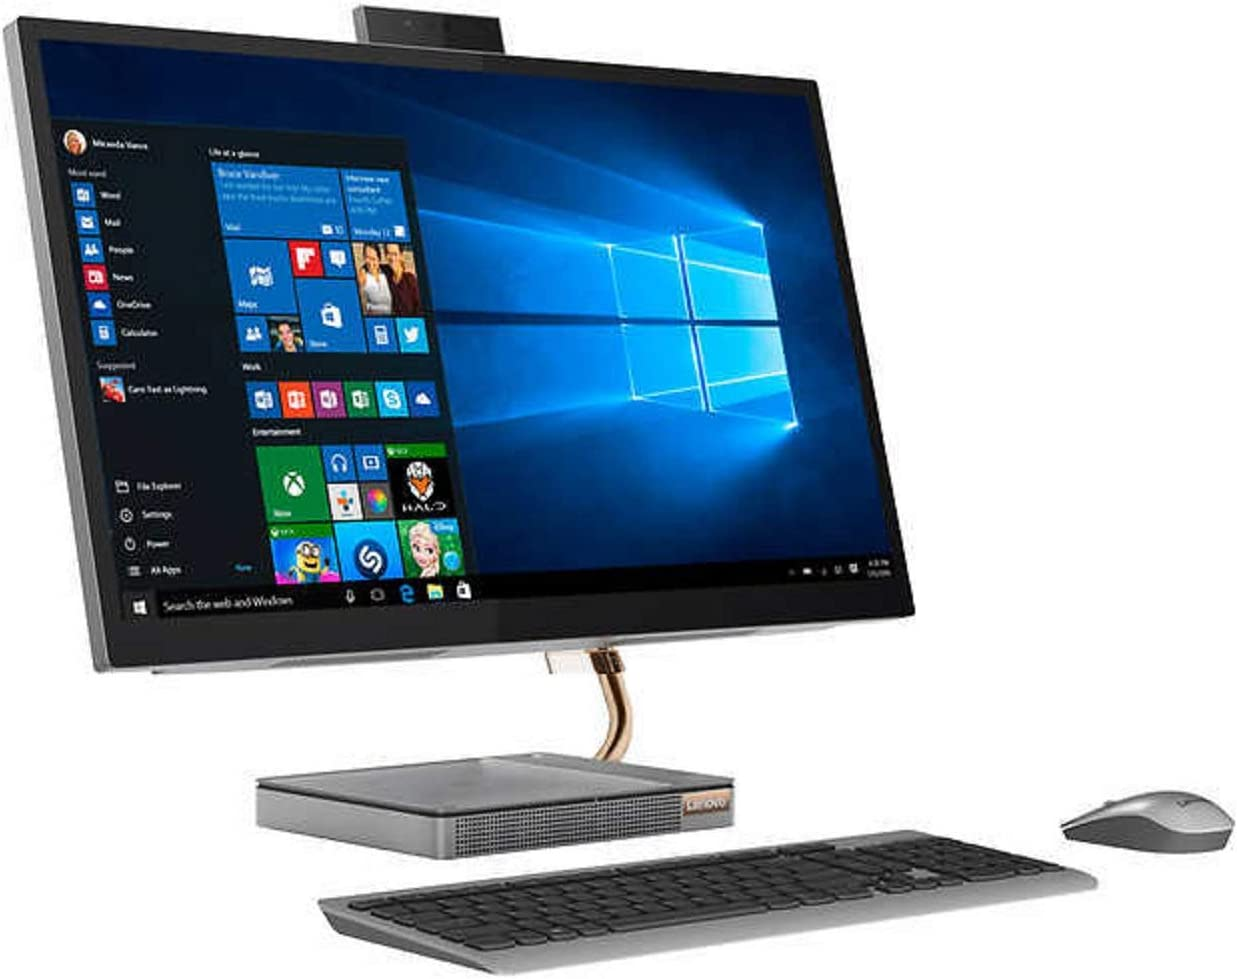 """Lenovo 27"""" QHD (2560 x 1440) Touchscreen All-in-One ideacentre A540 Desktop with Intel 8 Core i7-9700T Processor up to 4.30 GHz, 16GB DDR4 RAM (512GB SSD PCIe)"""